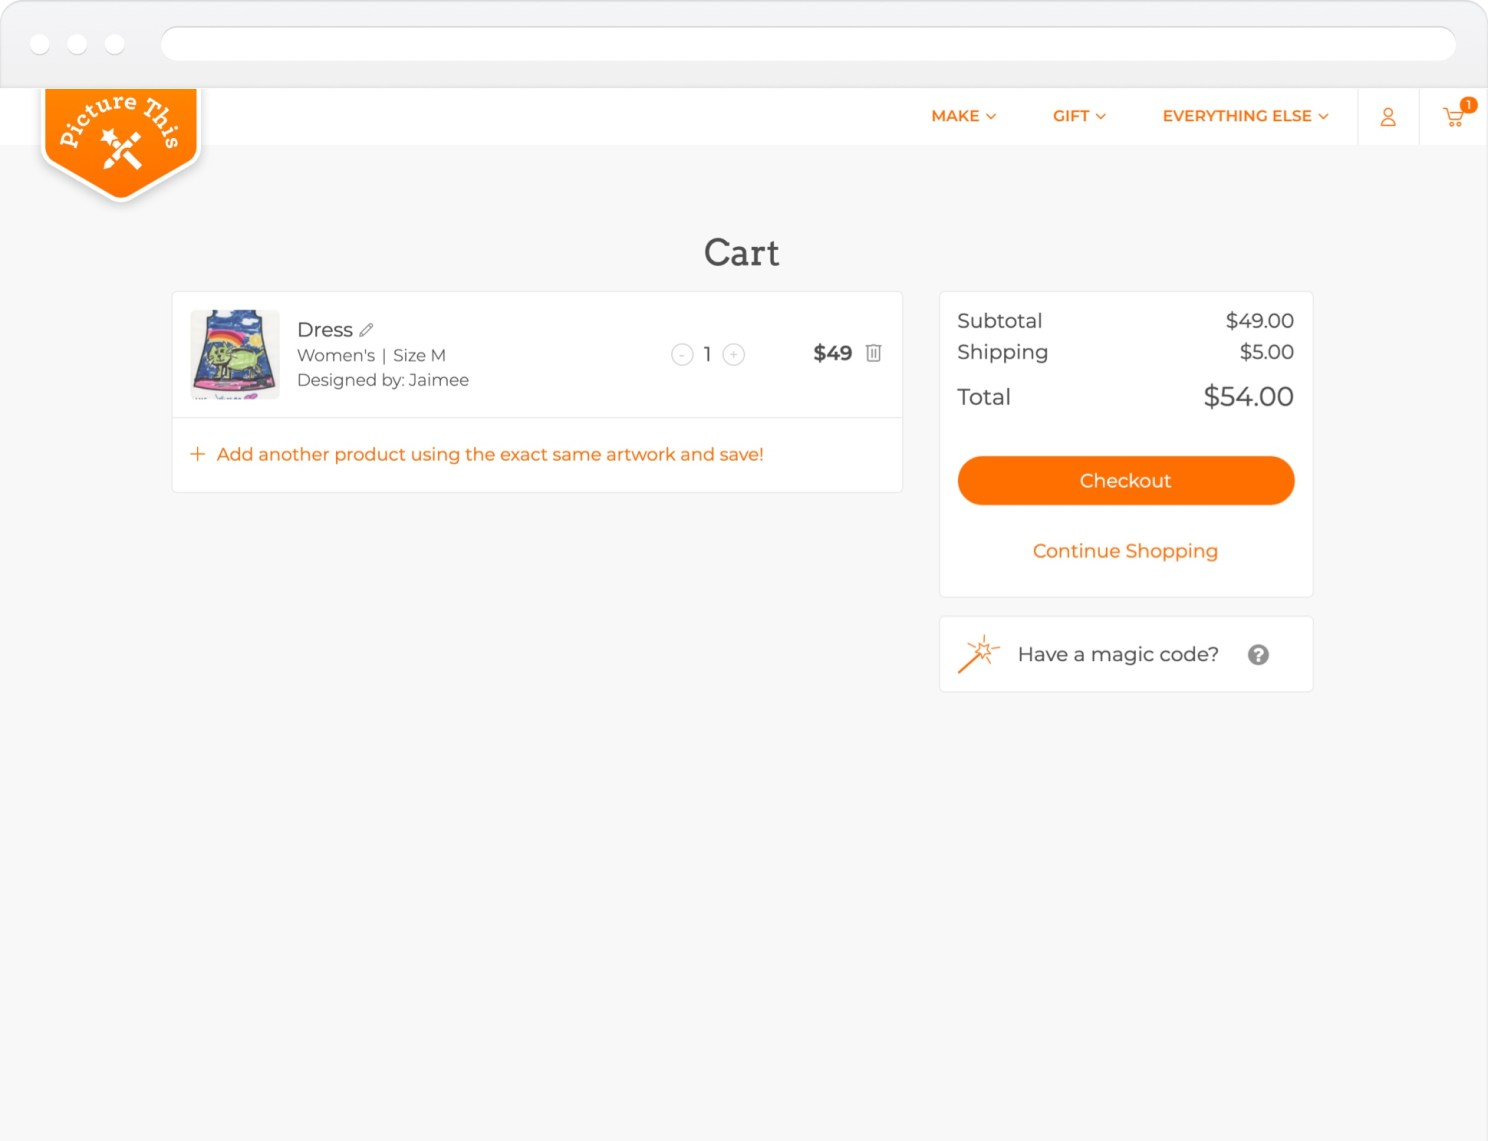 06A_Checkout - Ordering